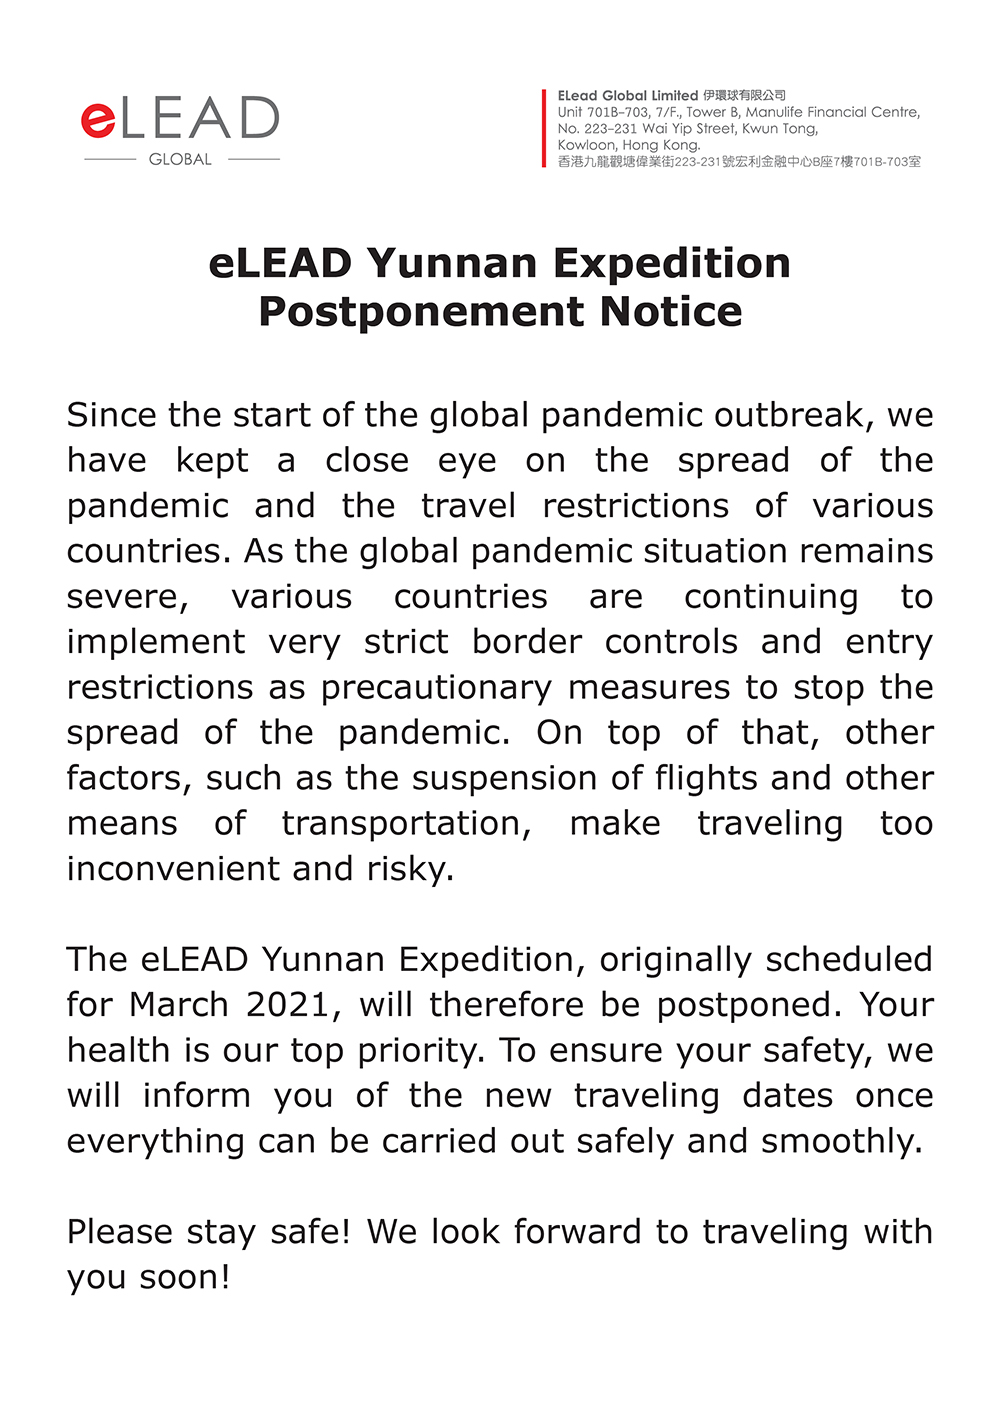 eLEAD Yunnan Expedition Postponement Notice